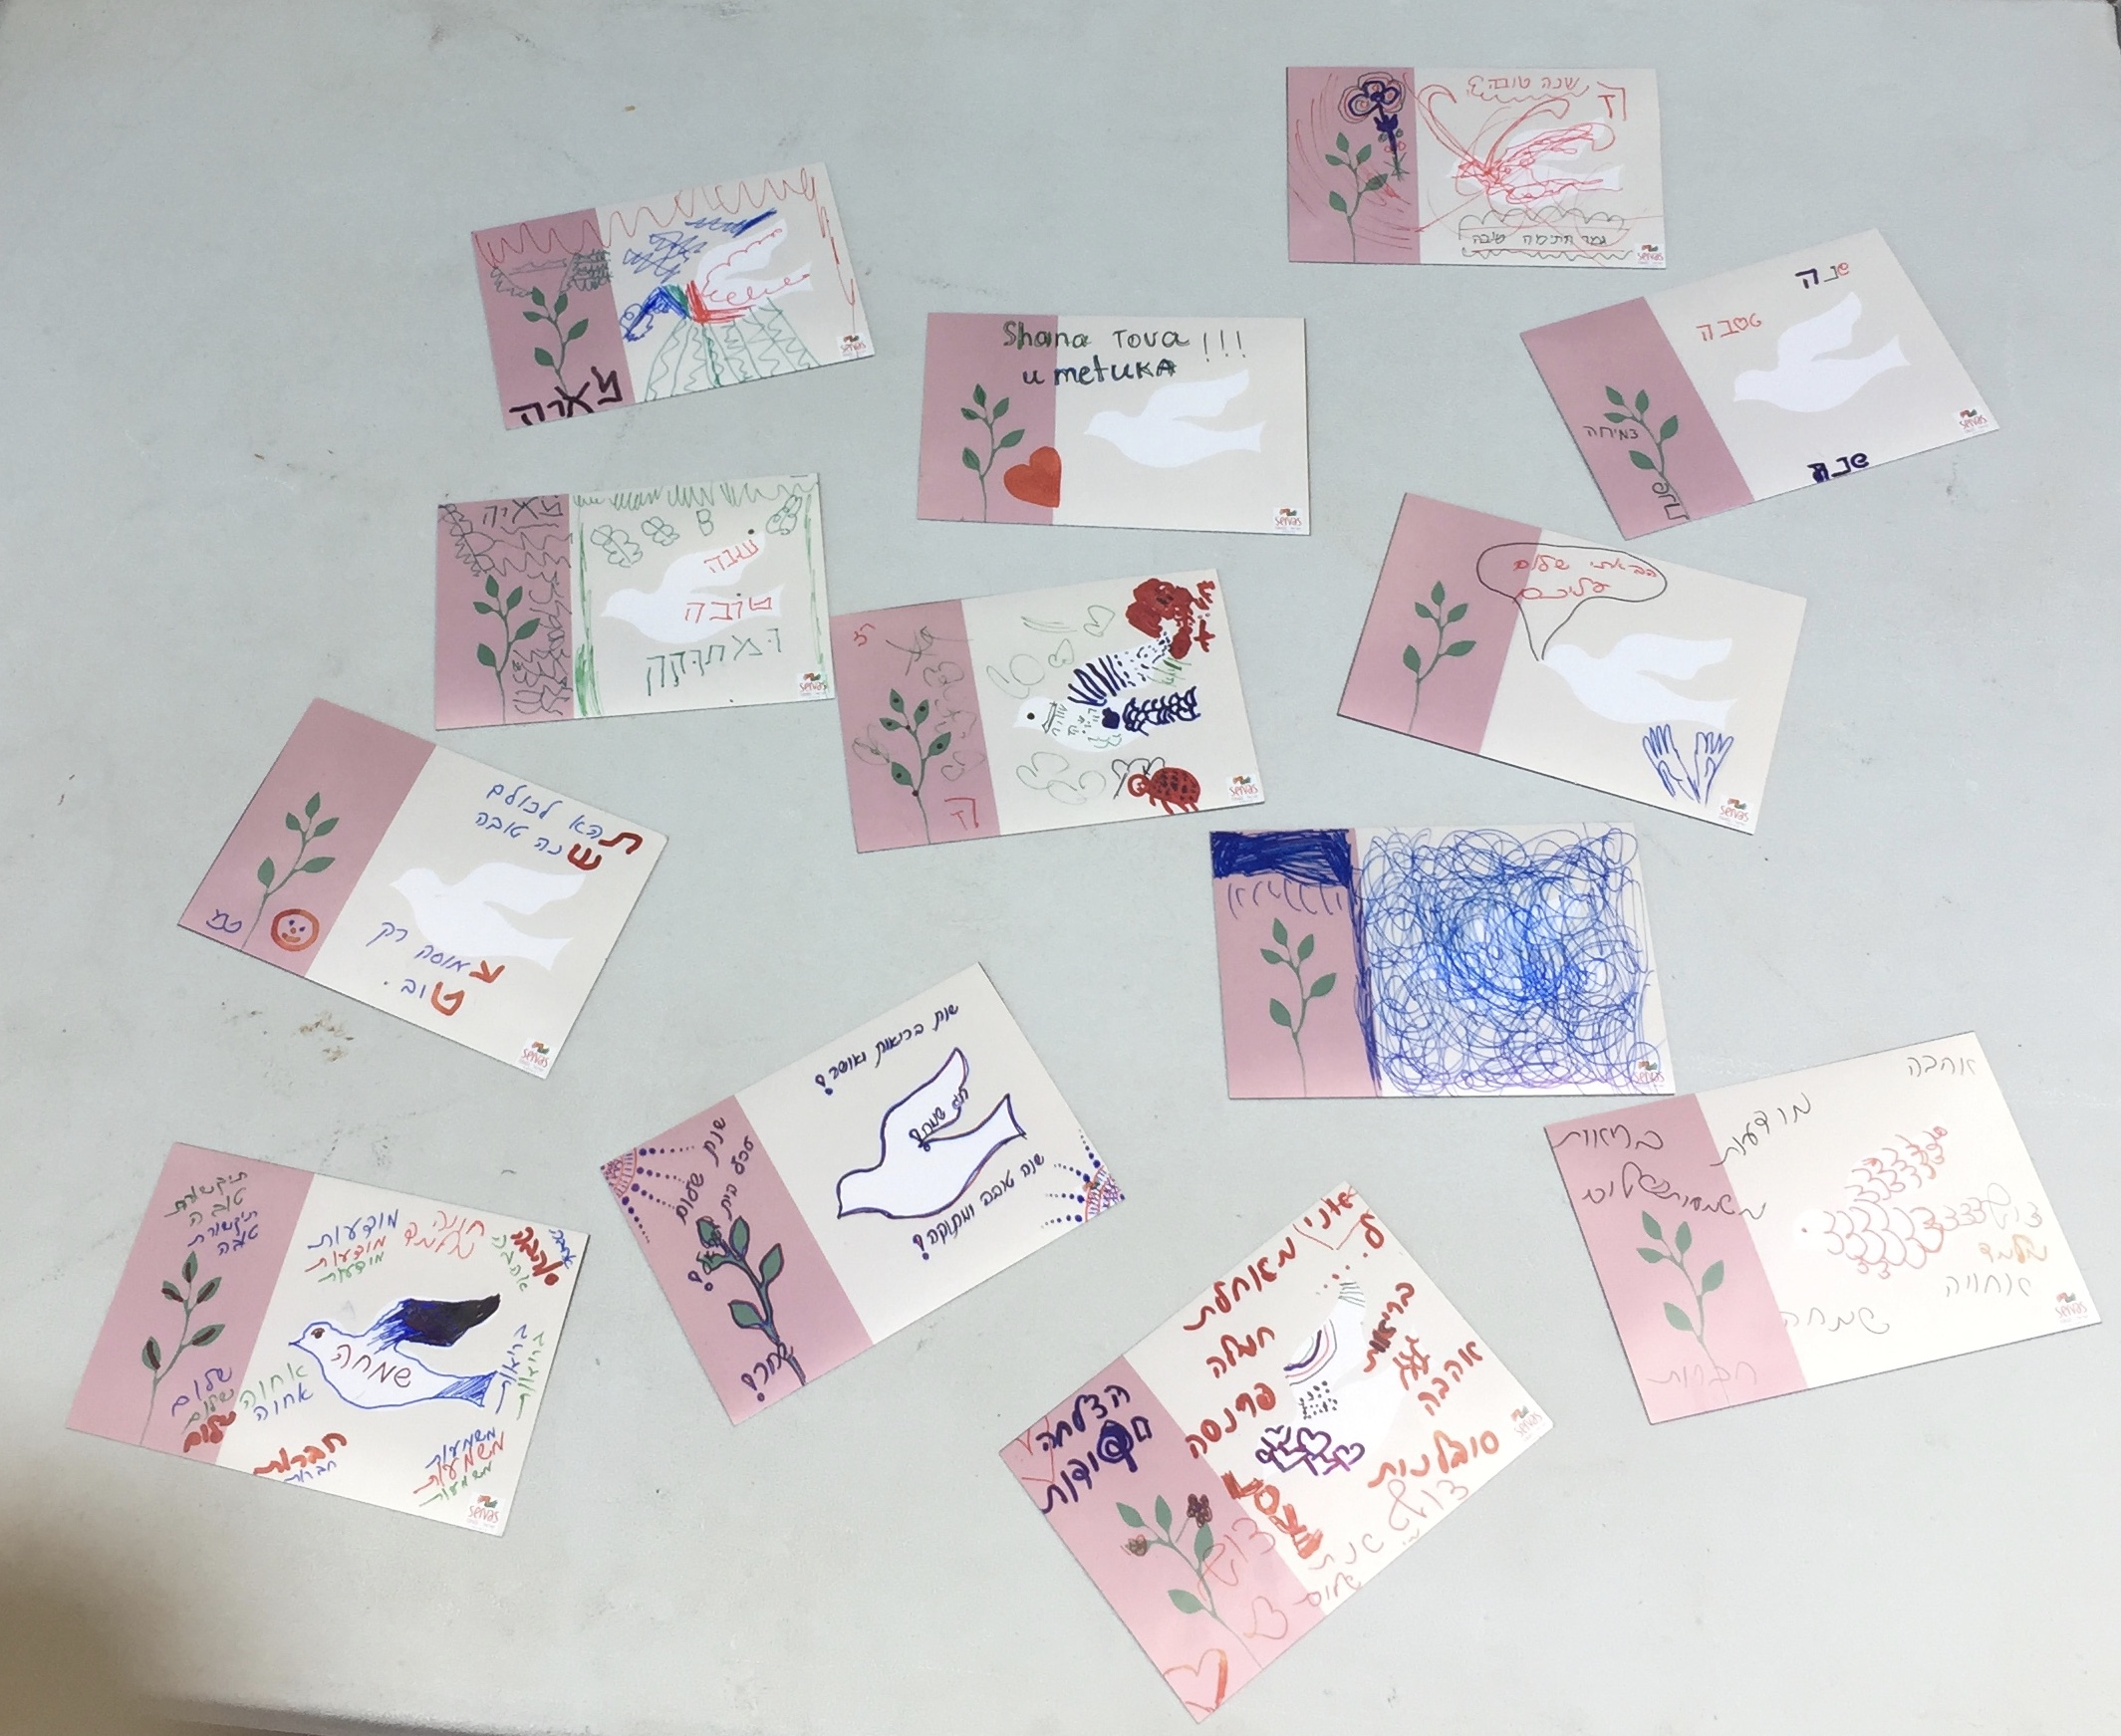 הברכות שהכינו הילדים Some of the greeting cards done by childern at the meeting